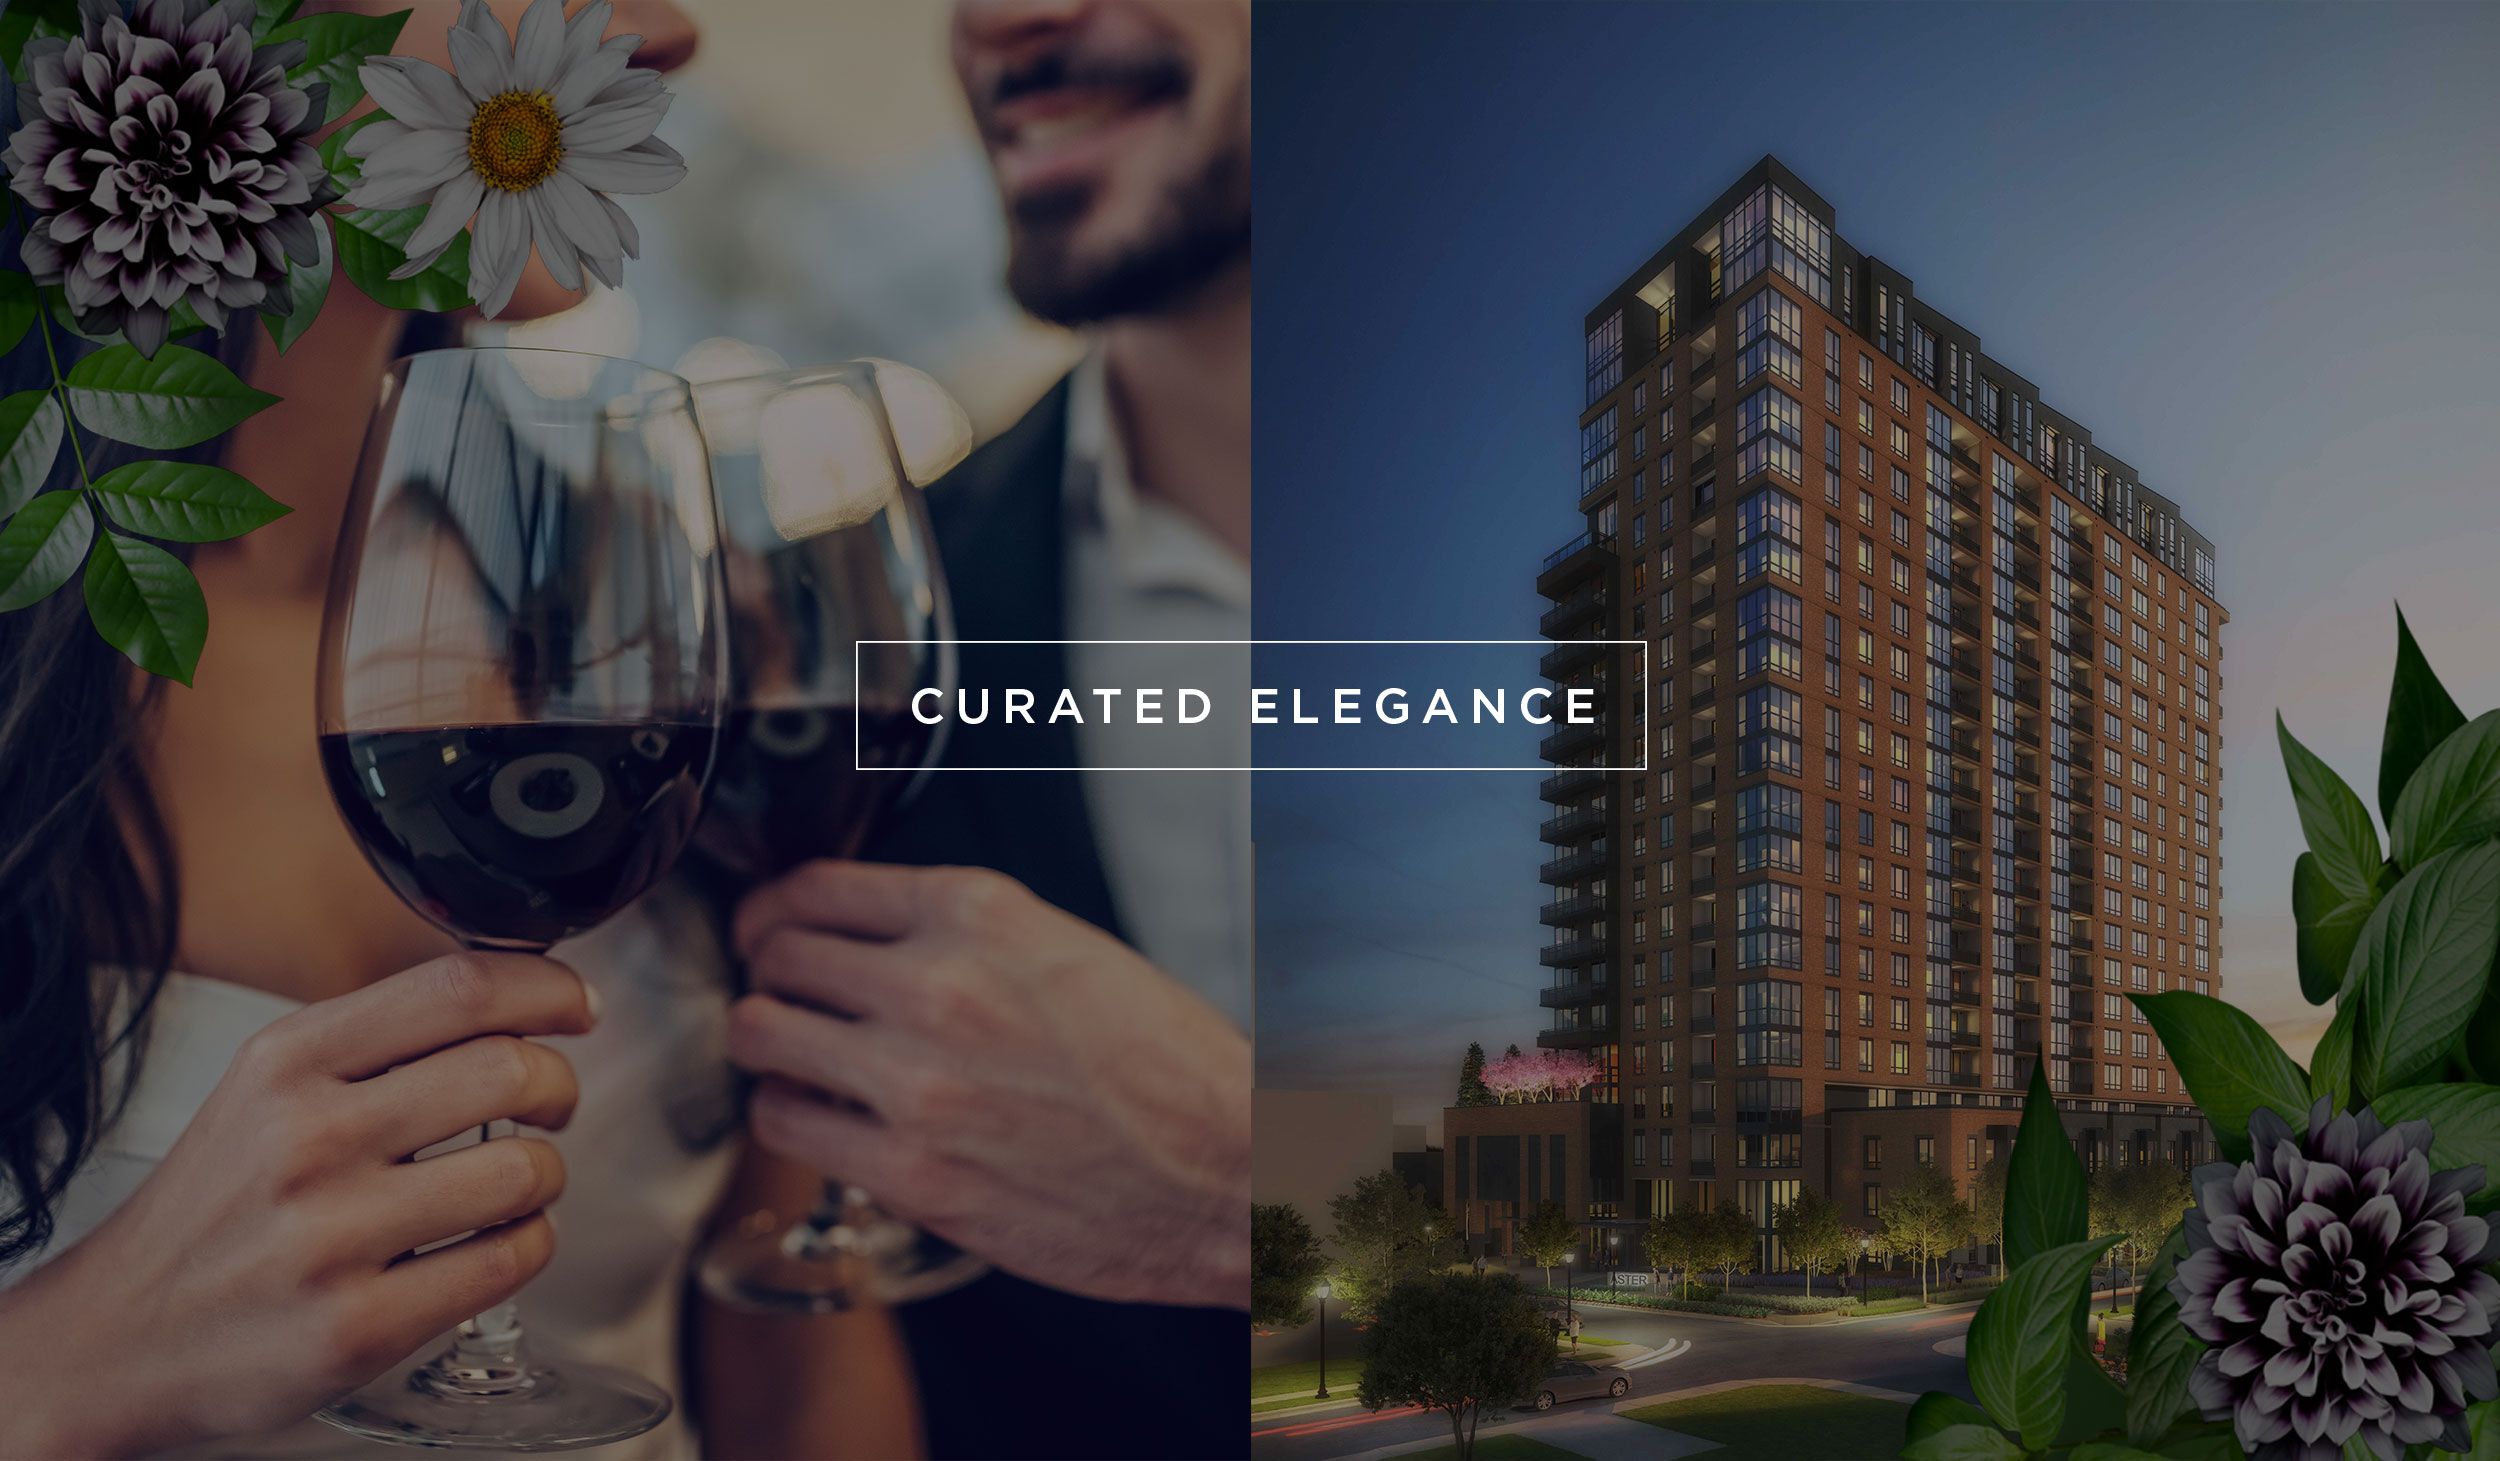 A side by side photo of two people with wine glasses and a rendering of Aster Turtle Creek luxury apartments with curated elegance in a text box.